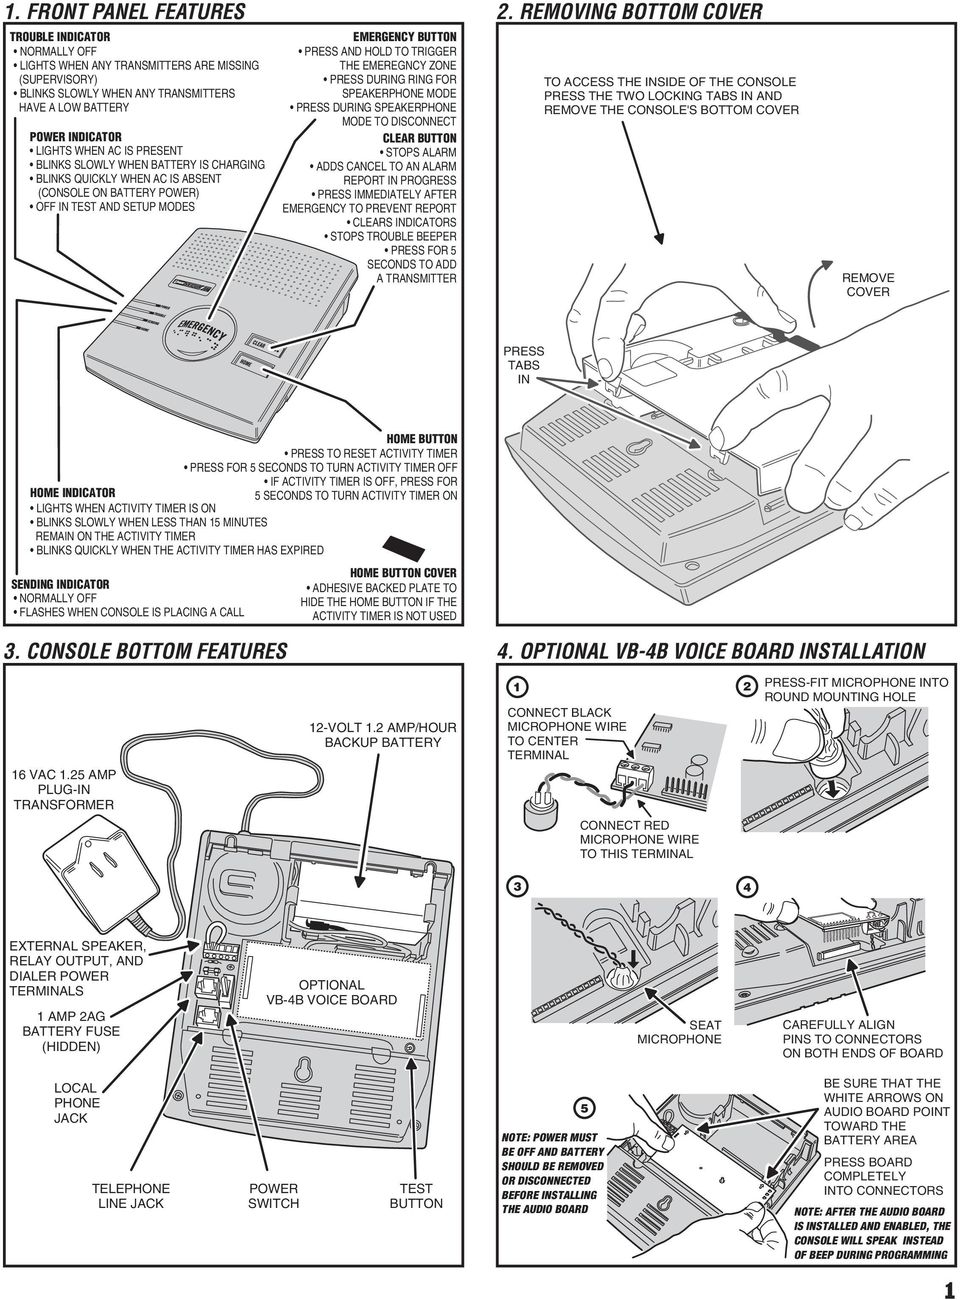 12 Volt Single Battery Wiring Diagram Click To Animate Pers 2400b Personal Emergency Reporting System Installation And For Speakerphone Mode Press During Disconnect Clear Button Stops Alarm Adds Cancel